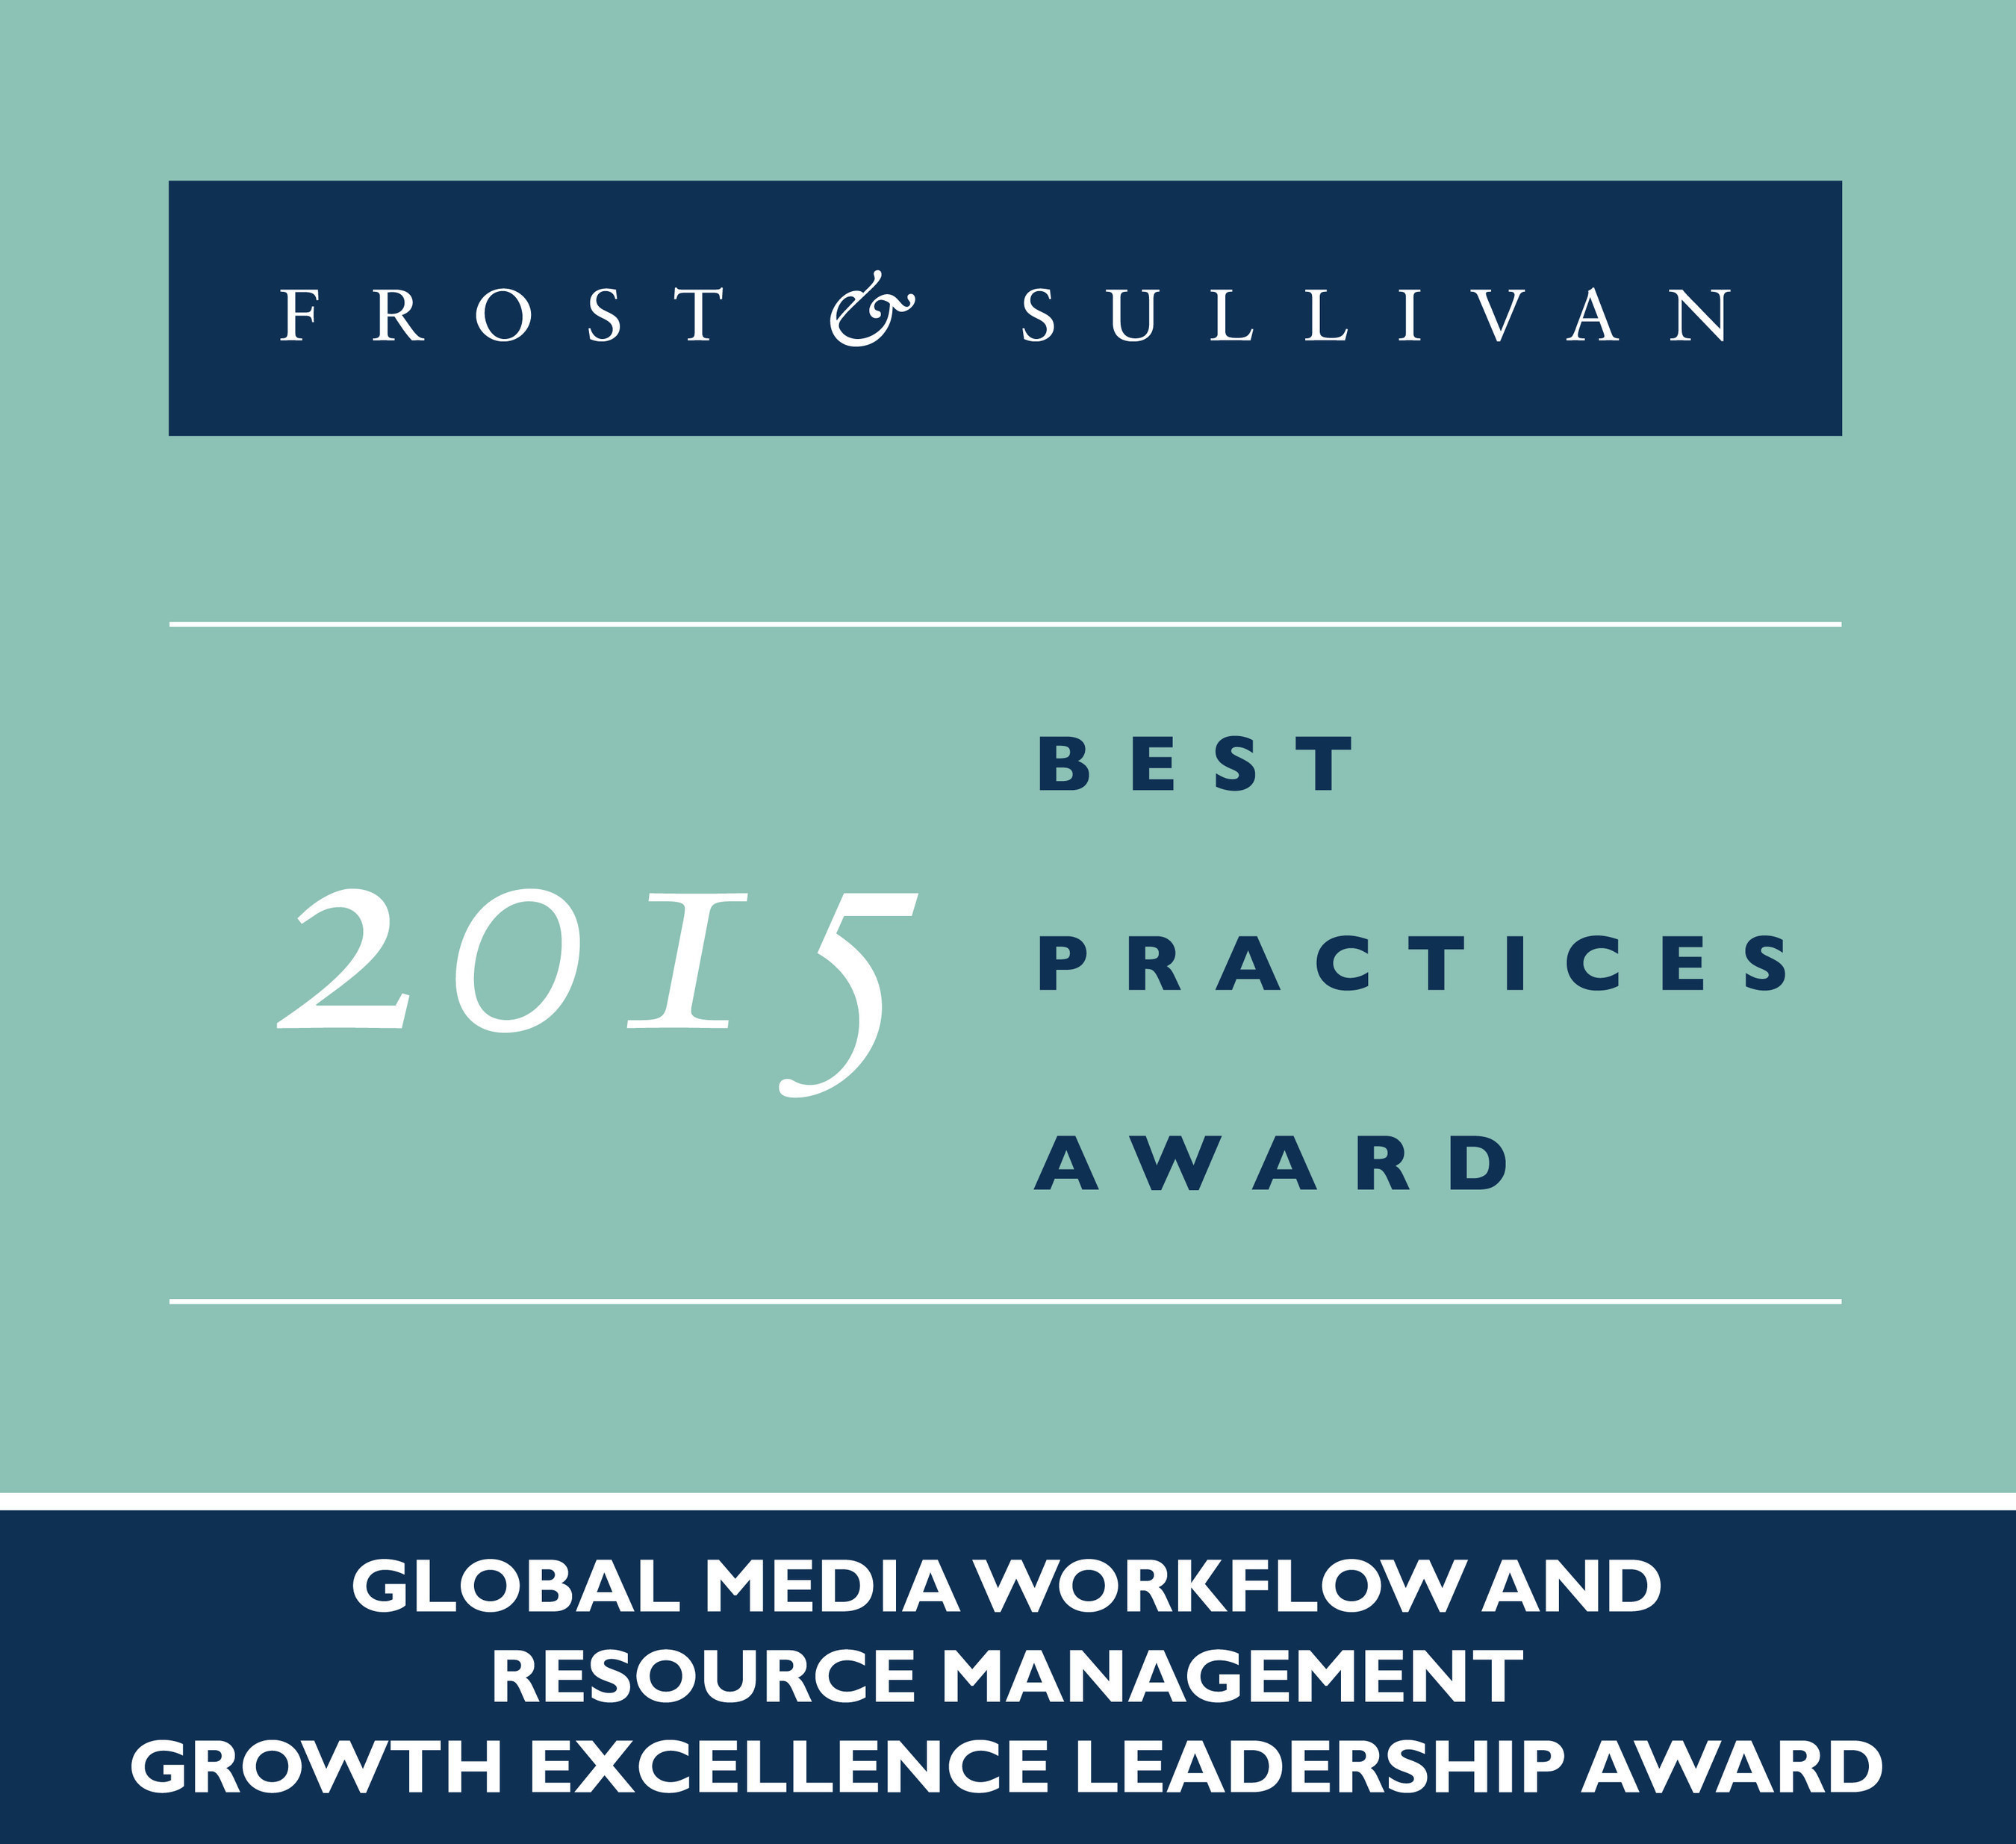 Frost & Sullivan Recognizes Prime Focus Technologies for its Leadership in Exemplifying Growth Excellence within the Media Workflow and Resource Management Market